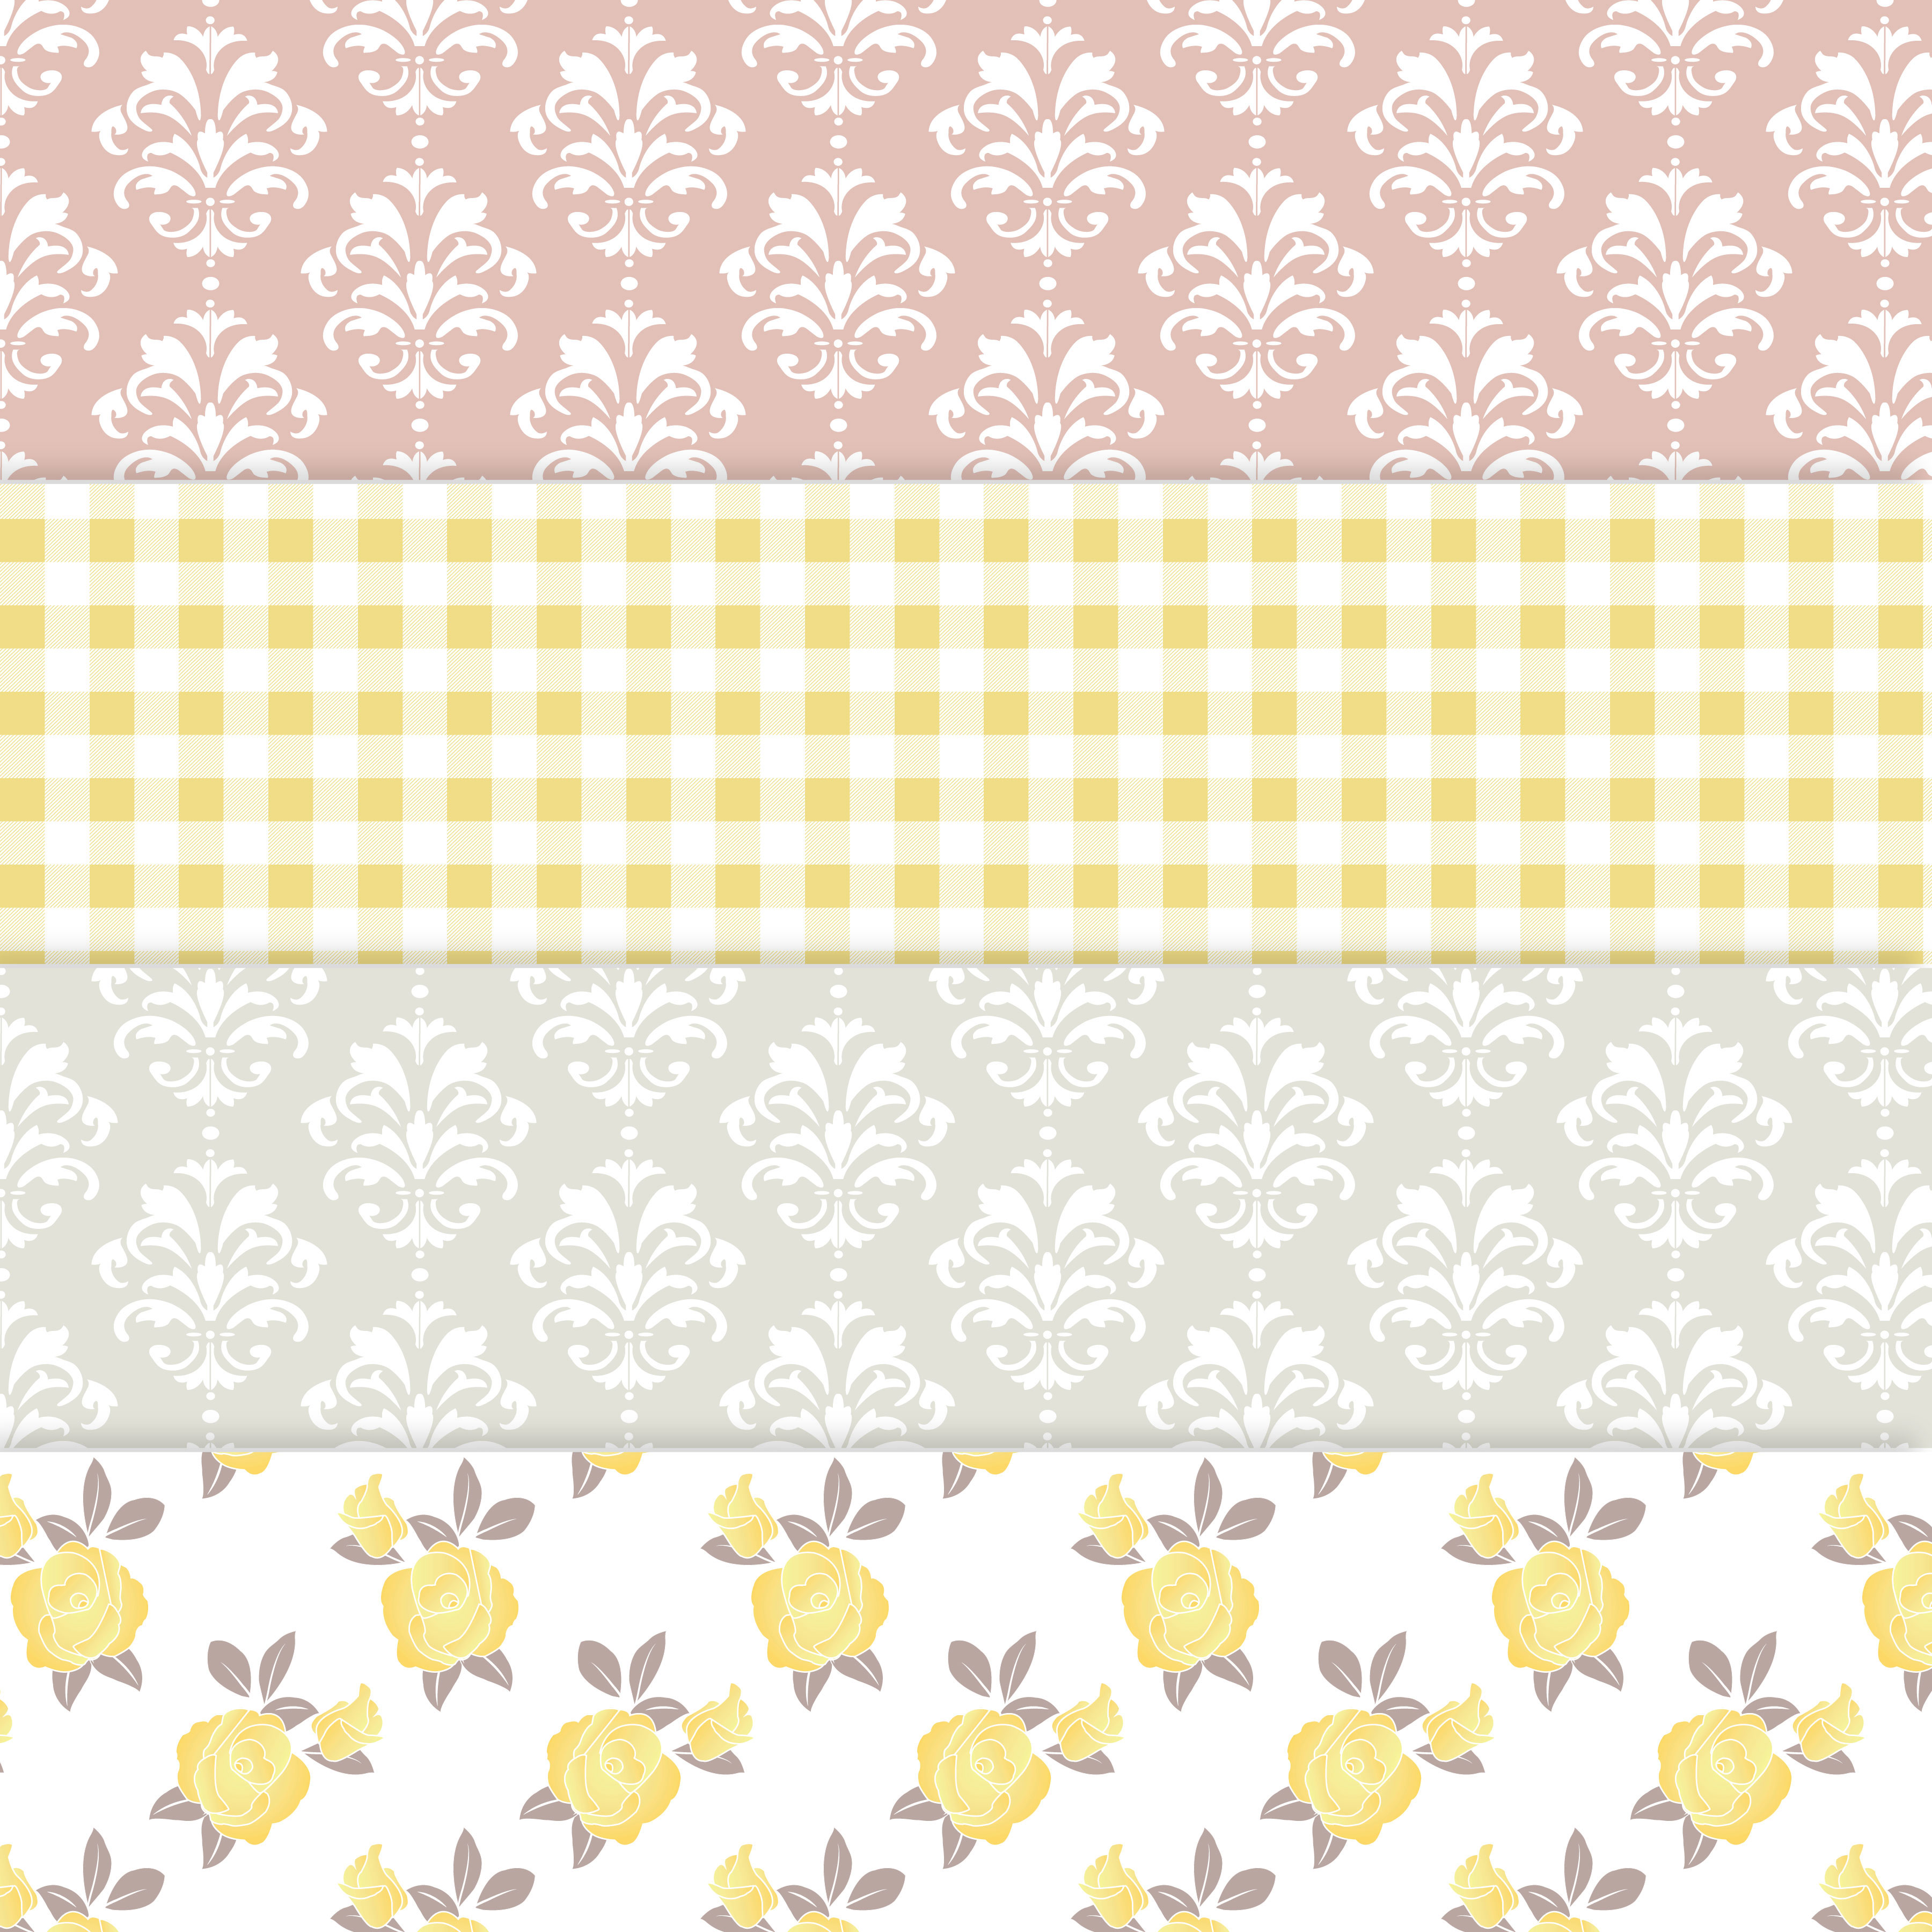 Floral Shabby Chic Digital Paper example image 3